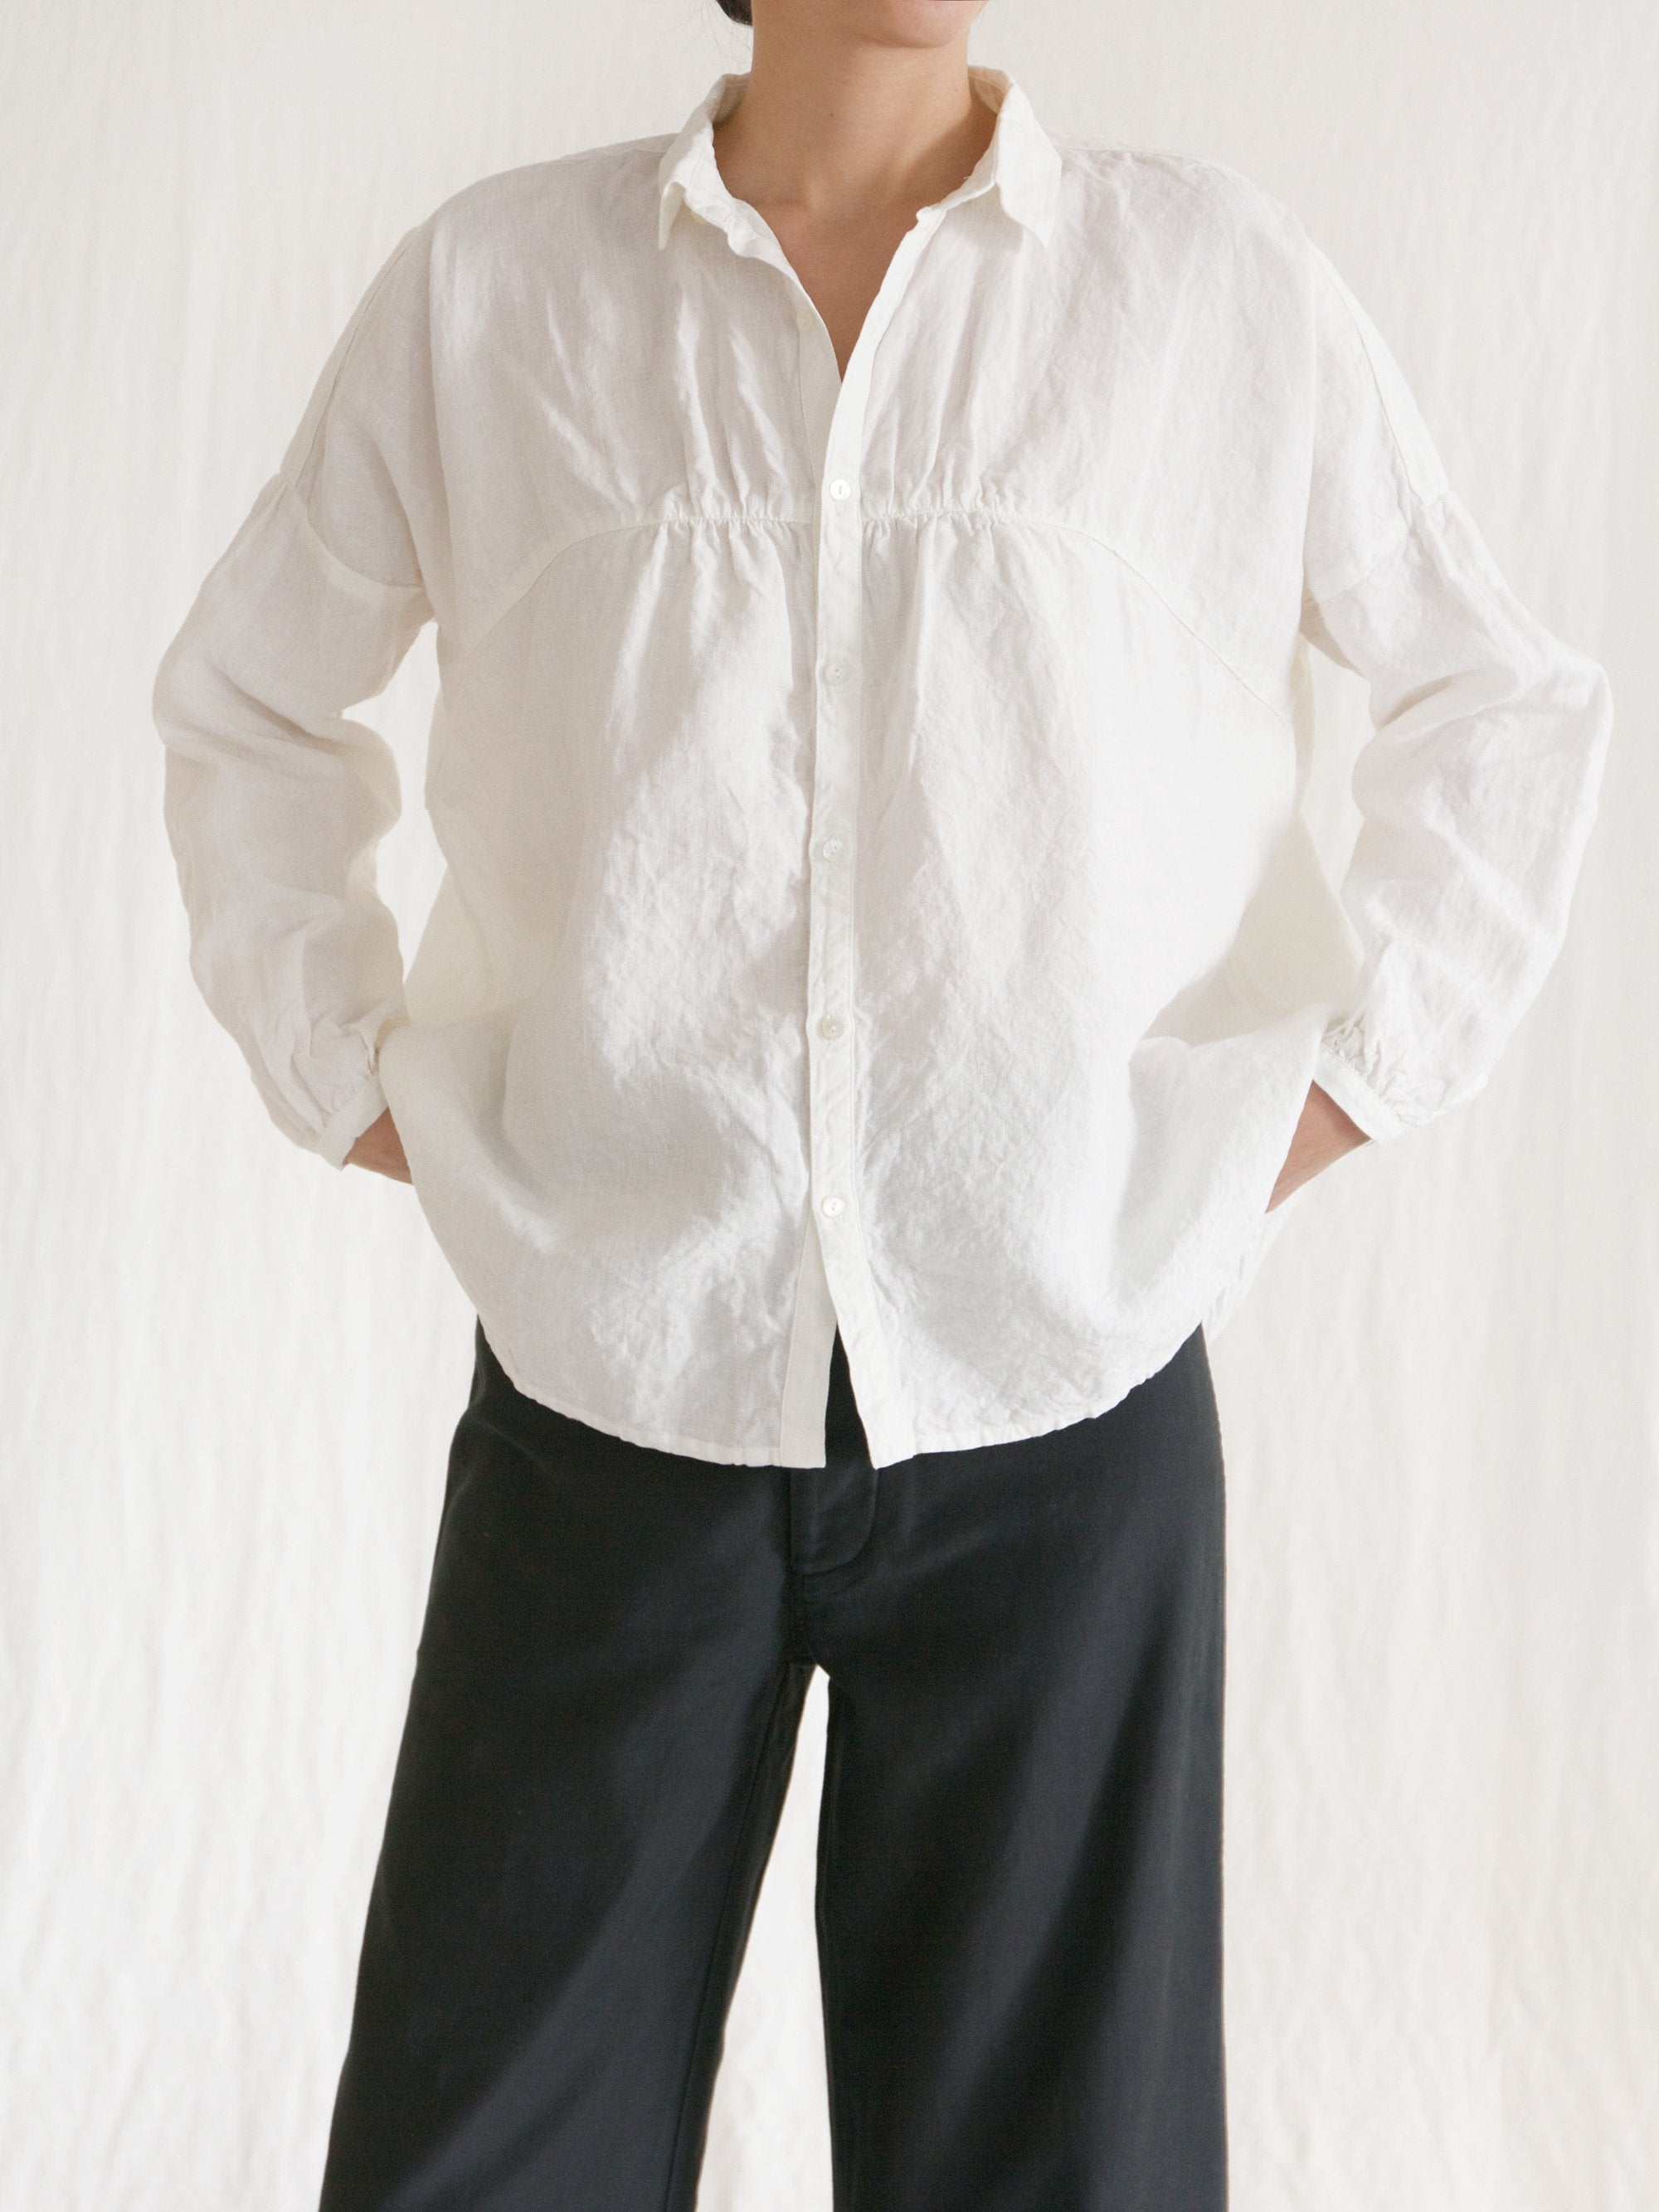 Namu Shop - Ichi Antiquites Linen Gather Circle Shirt - White